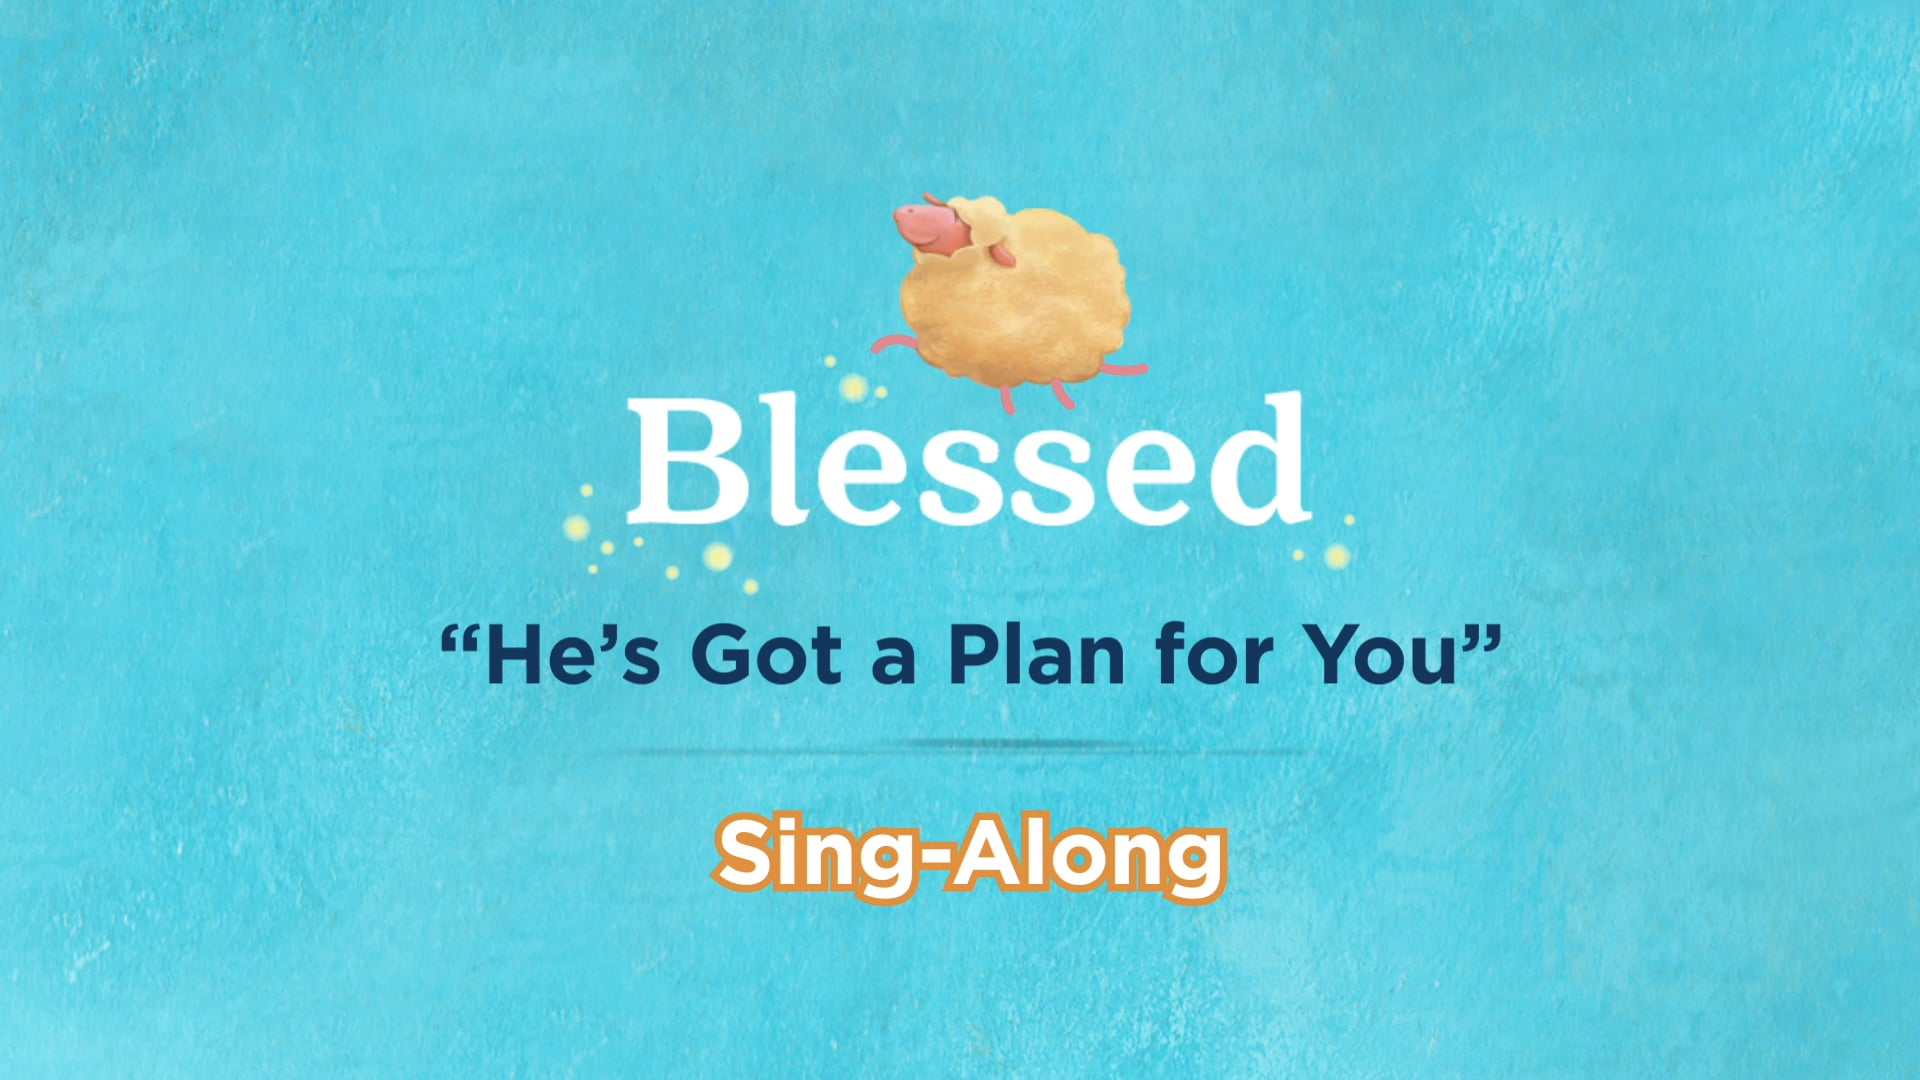 """Blessed - Promo - """"He's Got a Plan for You"""" Sing-Along"""